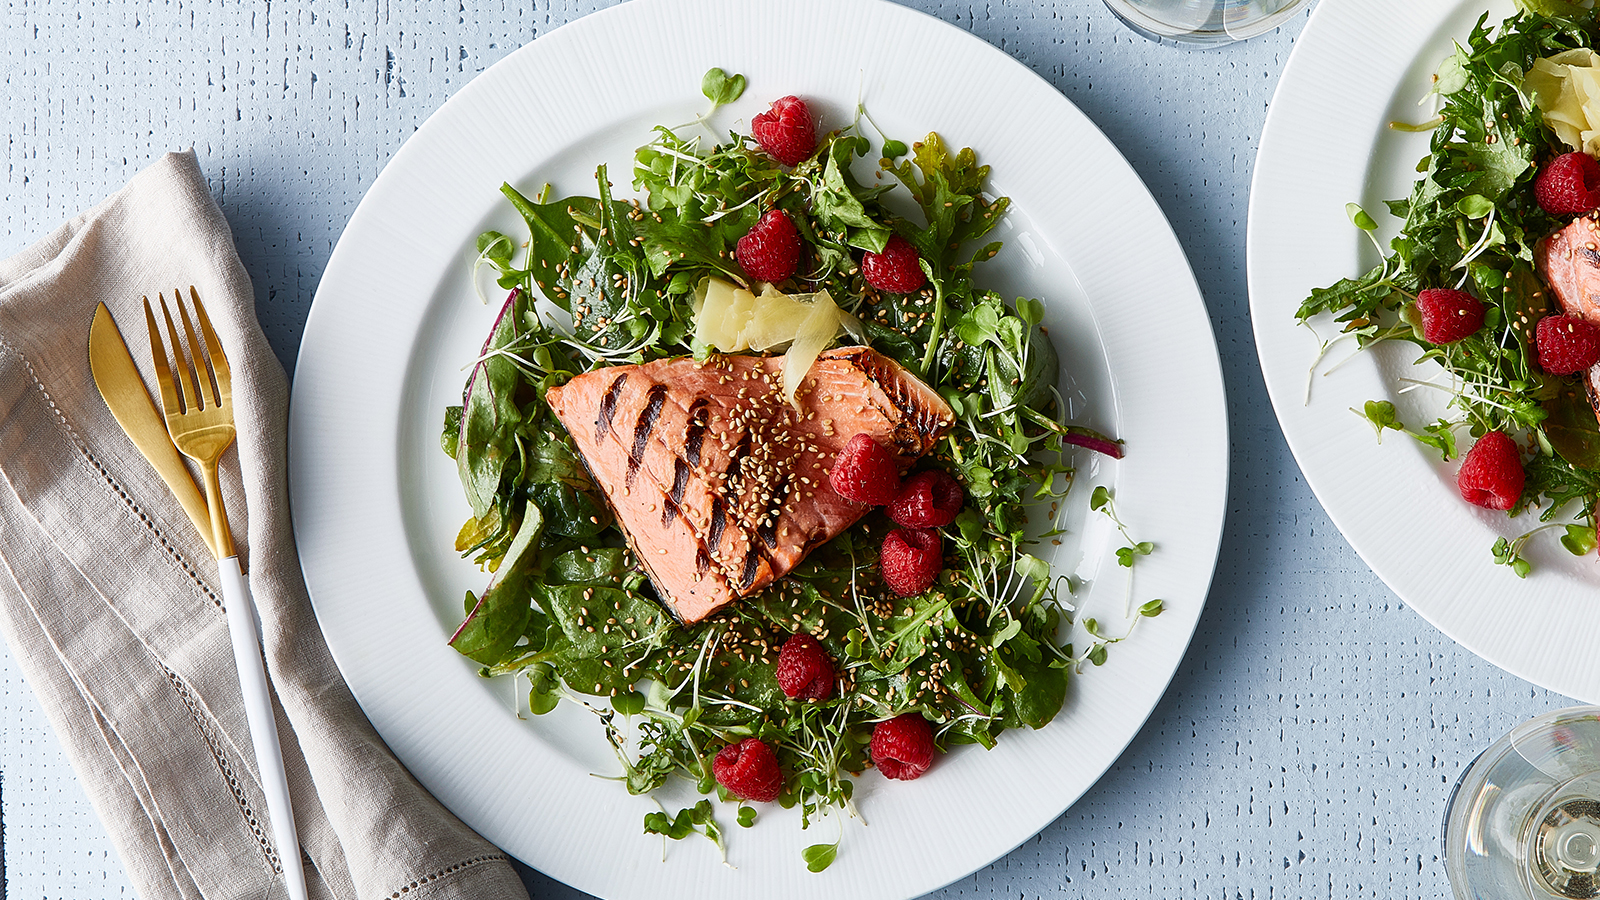 Grilled Salmon with Raspberry Wasabi Salad